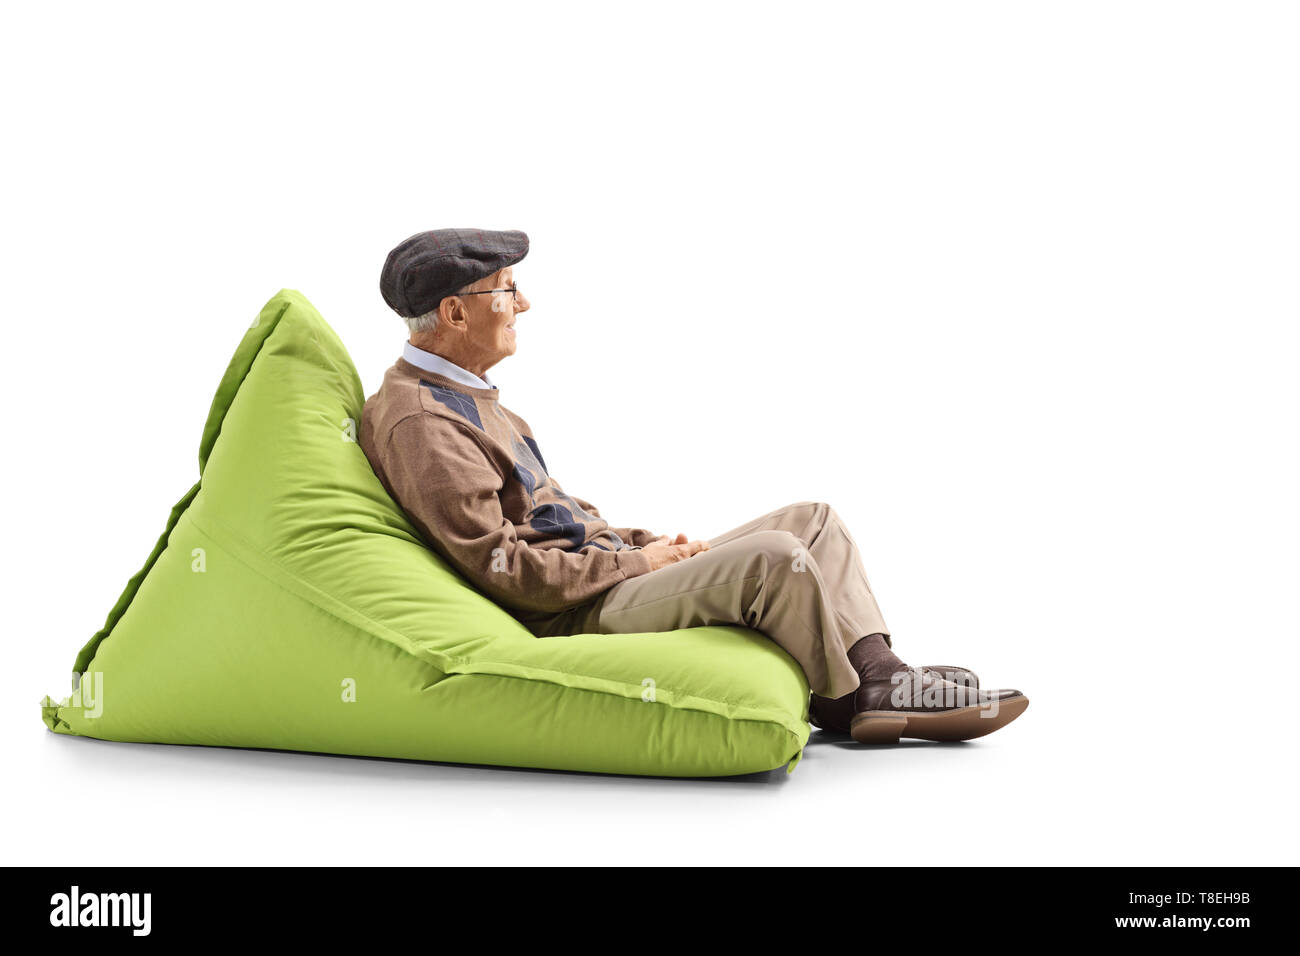 Full length profile shot of an elderly man sitting on a green bean bag isolated on white background - Stock Image